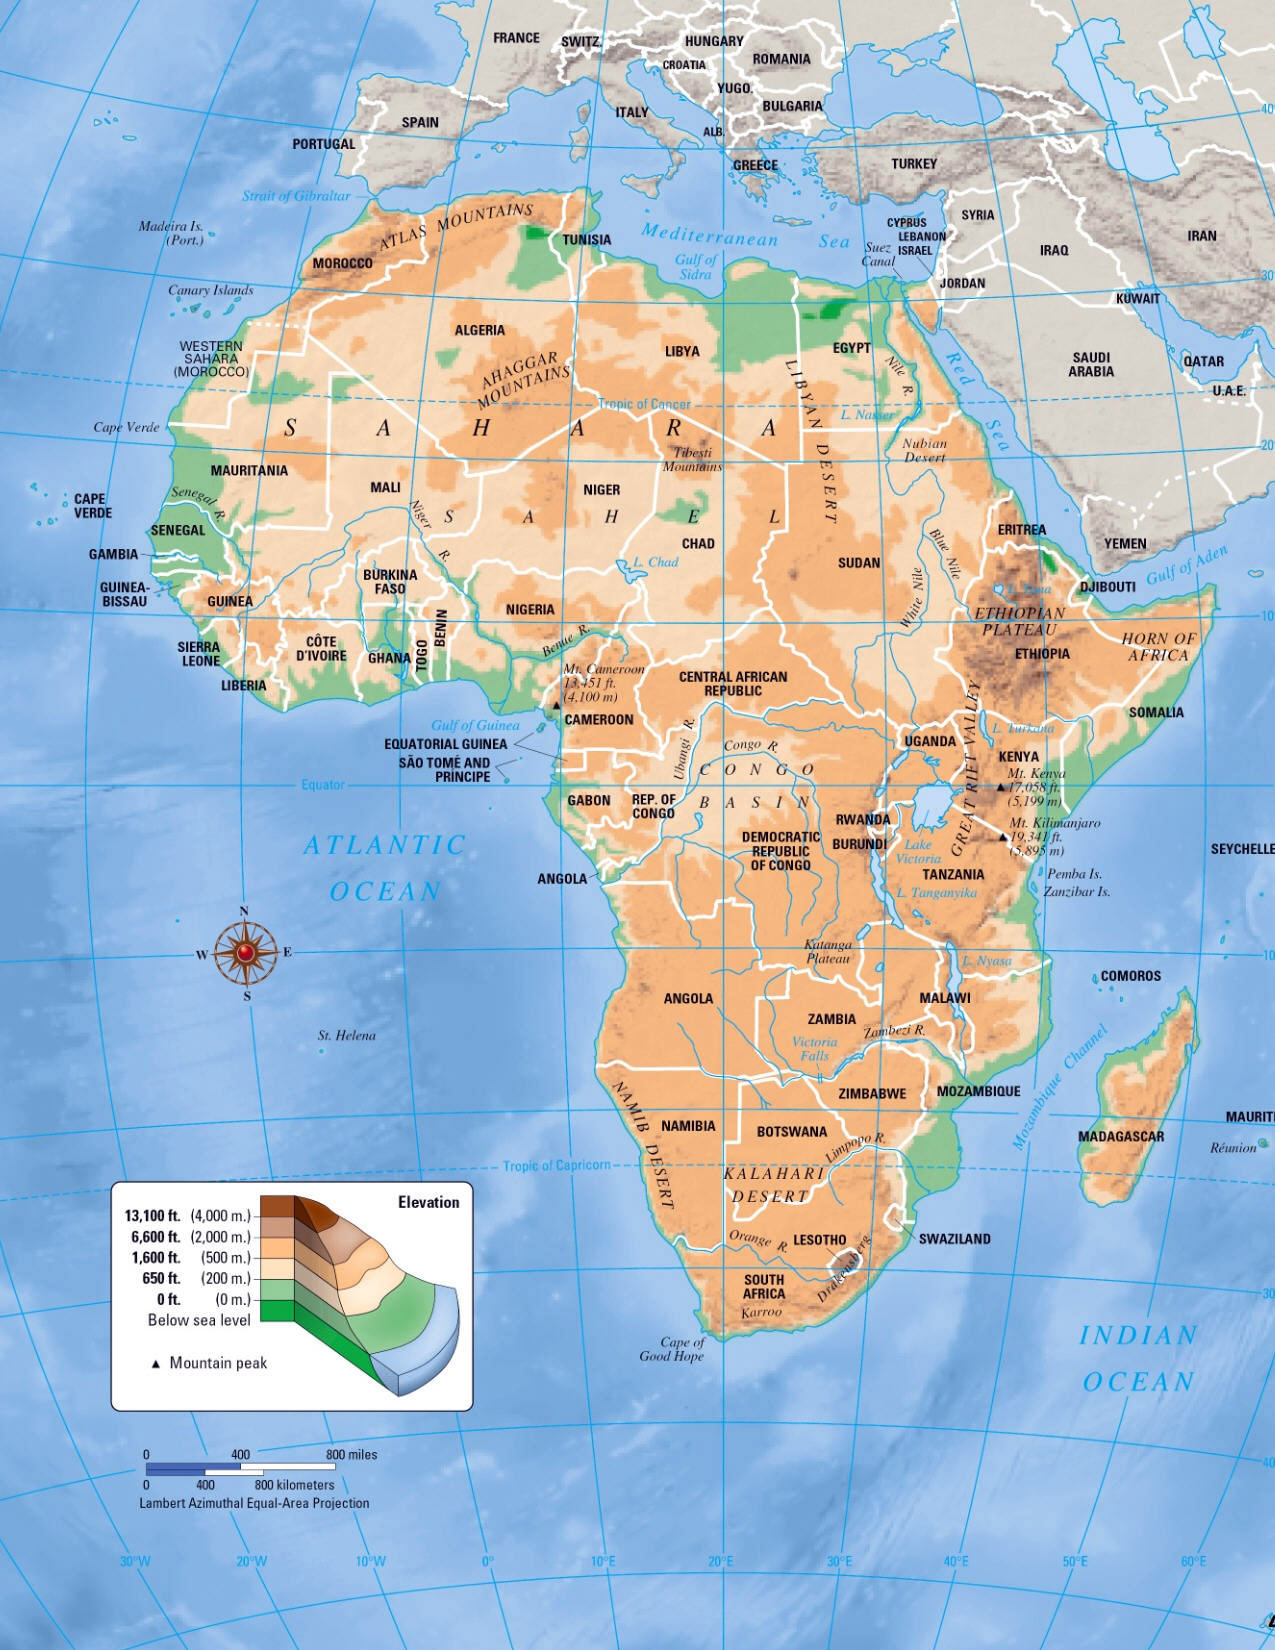 Large elevation map of africa africa mapsland maps of the world large elevation map of africa sciox Image collections